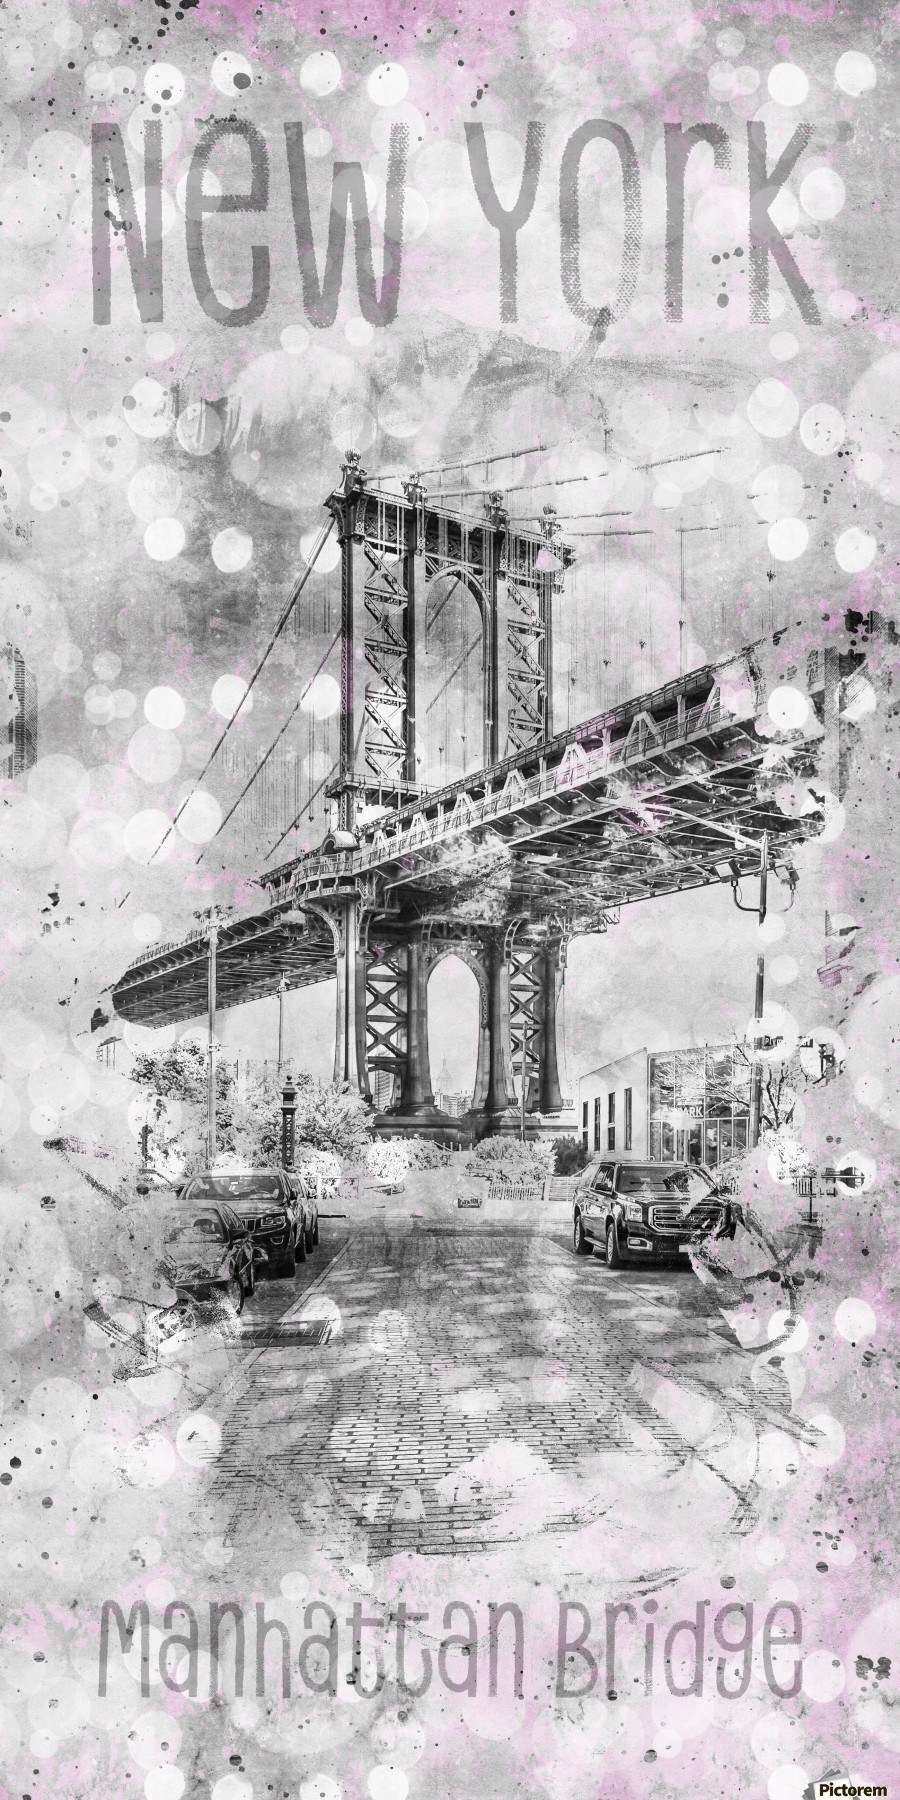 Graphic Art NEW YORK CITY Manhattan Bridge , Melanie Viola , New York City, New York, America, american, Dumbo, Brooklyn, Manhattan, NY, NYC, USA, US, United Staates, architecture, attraction, famous, landmark, popular, sight, Sightseeing, skyline, downtown, cityscape, Manhattan Bridge, bridge, Washington Street, urban, upright, vertical, black, white, panorama, panoramic, narrow, slim, pink, grey,  abstract, art, decorative, design, digital, graphic, graphic art, illustration, Mixed Media, pattern, poster style, trendy, typography, wallart, word, textart, text, splashes, watercolour, watercolor, lifestyle, modern